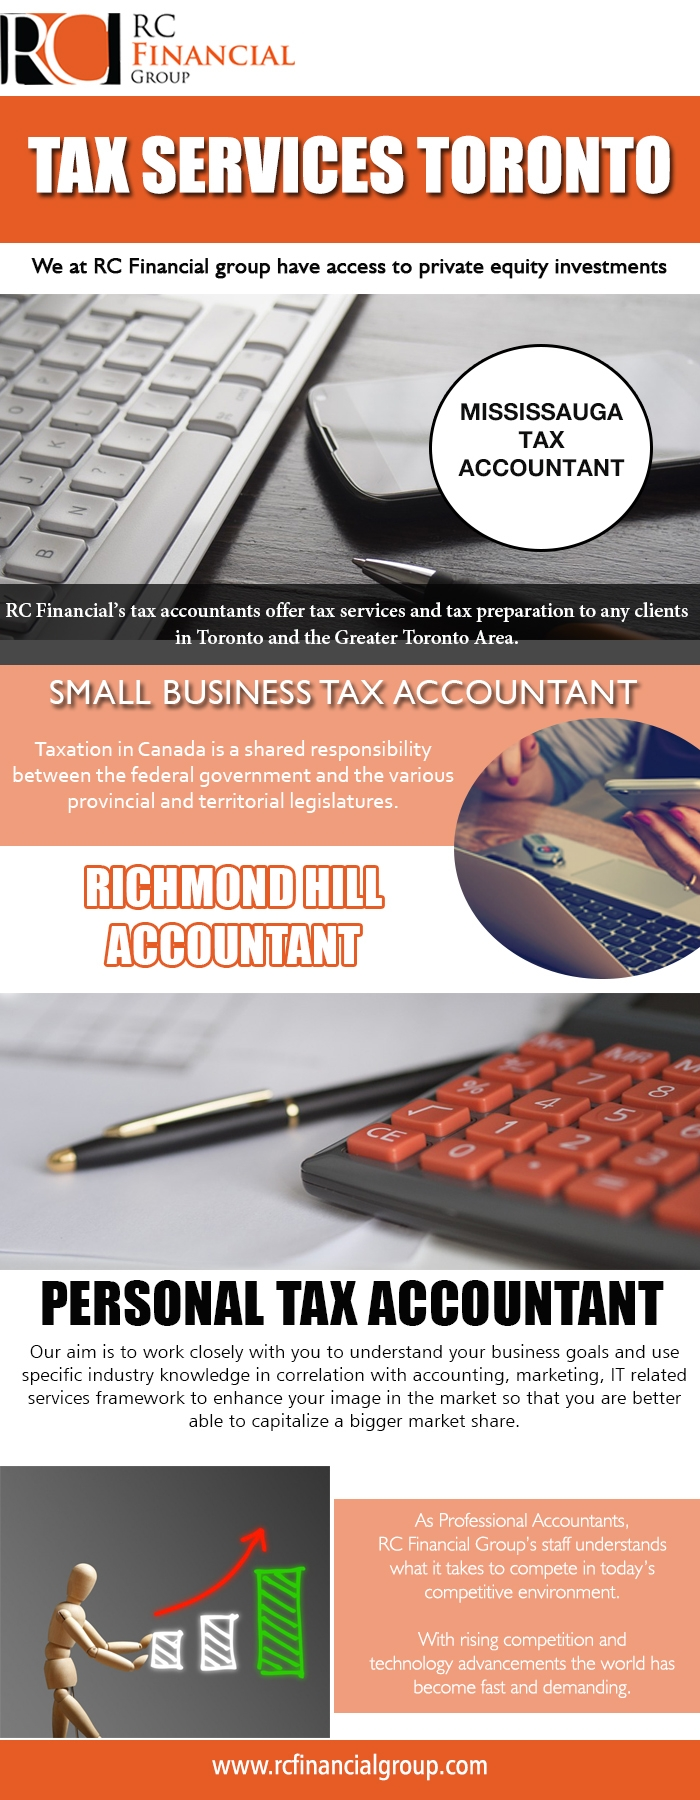 Toronto Tax Accountant Site met - mississaugaaccountant | ello